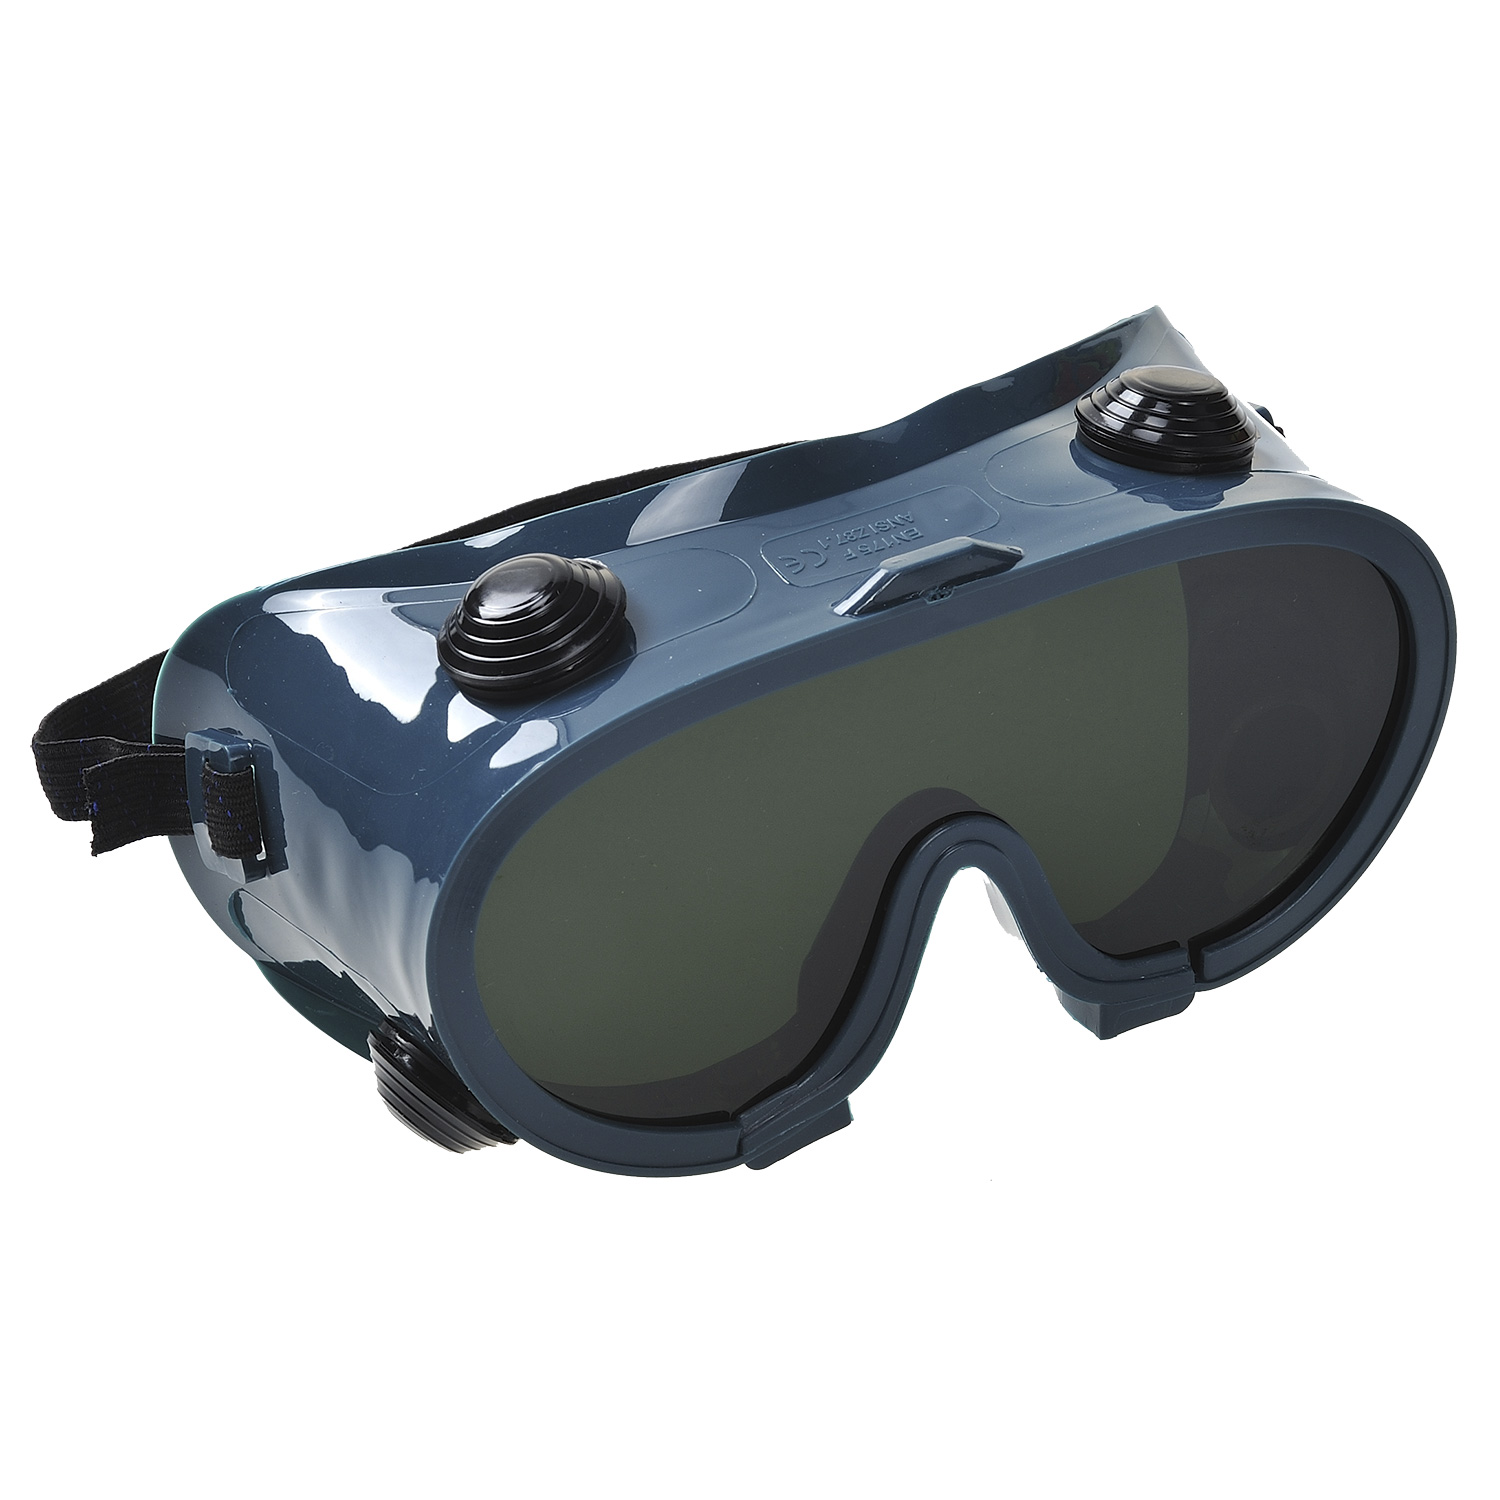 PW61 Safety Welding Goggles - Eye Protection 240176a5dd